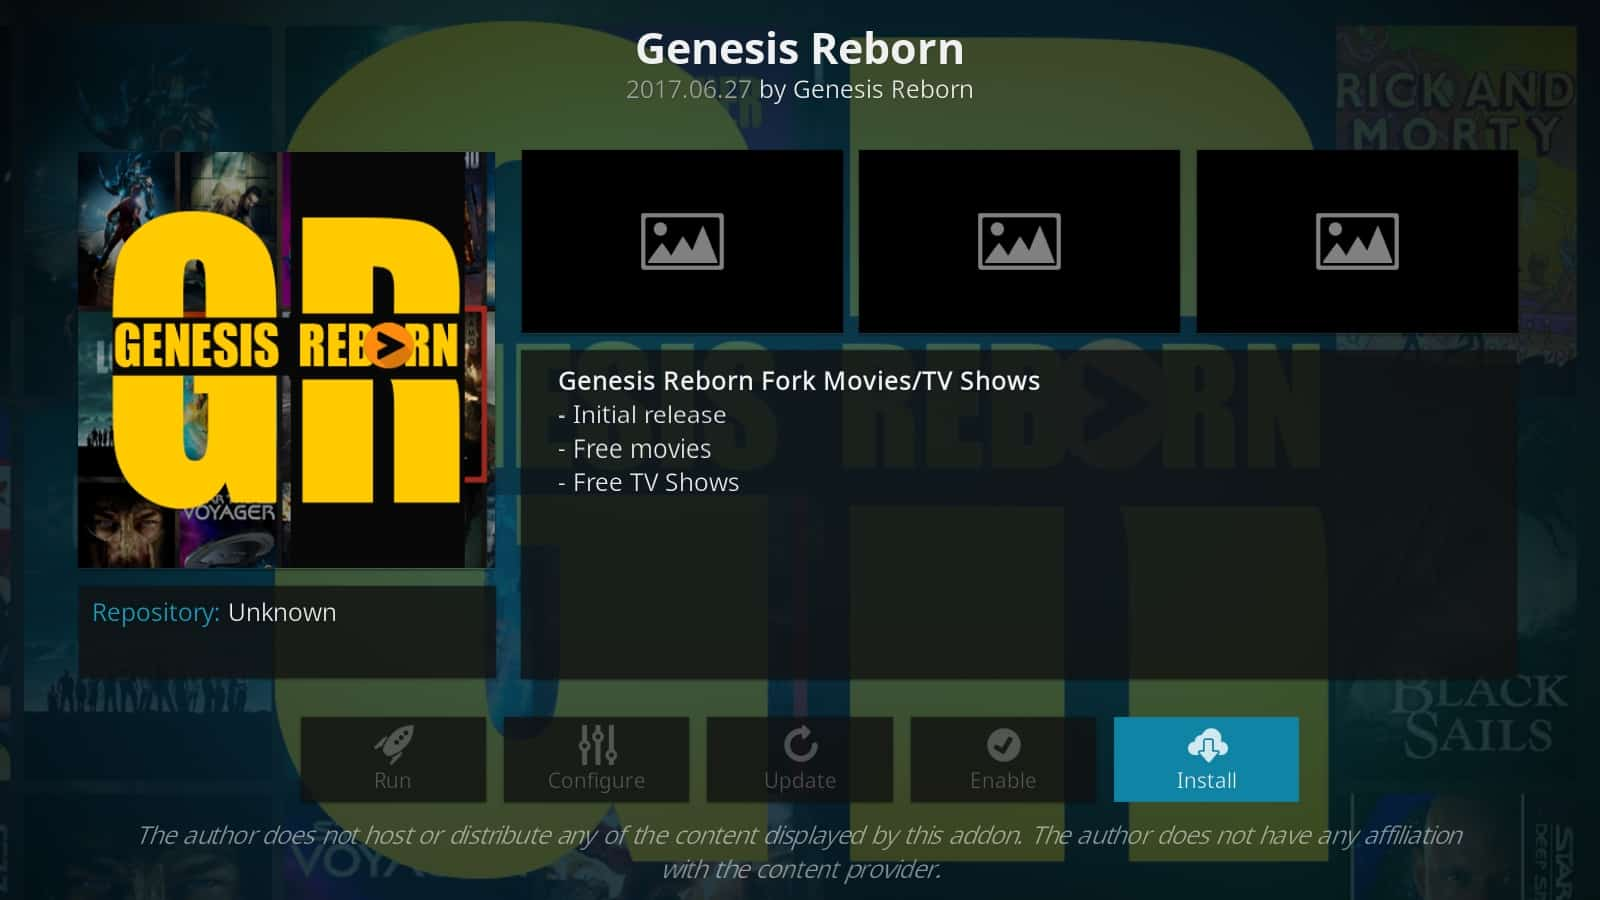 Kodi Genesis Reborn Addon: Is it Safe? Should you install? | Comparitech